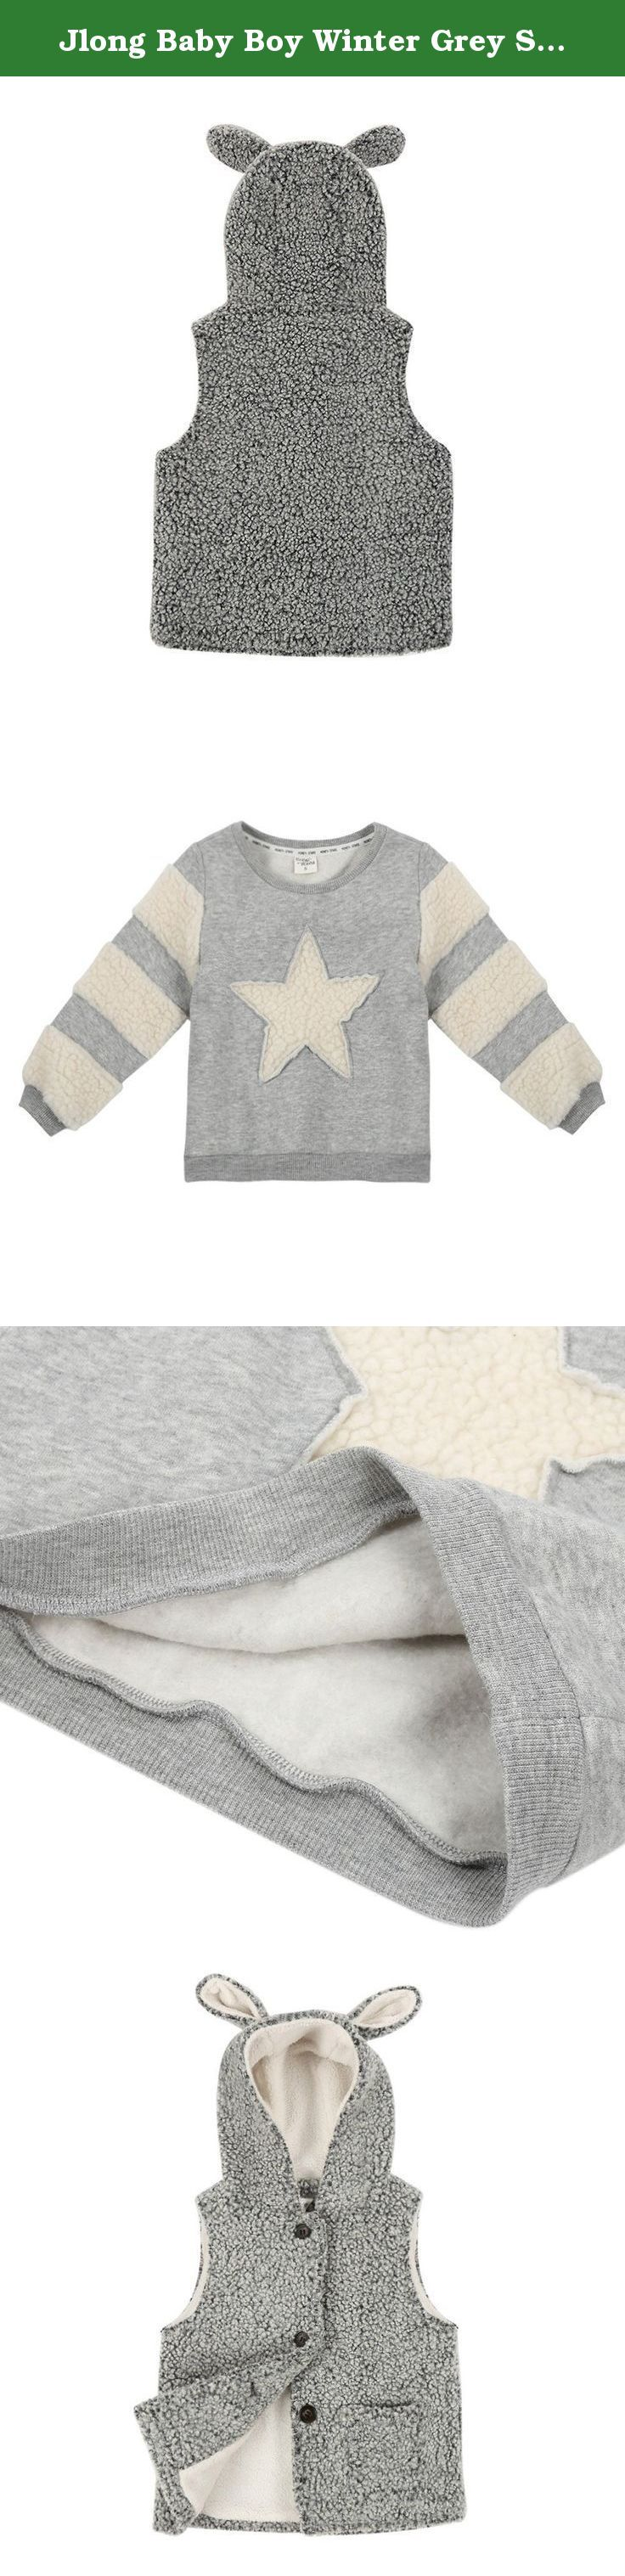 """Jlong Baby Boy Winter Grey Sleeveless Down Outerwear Vest & Pullover Sweater 2pcs. Features: Soft and breathable healthy fabric Comfortable to touch and wear Color:Grey Material:Wool & cotton Gender: Unisex,Girls,Boys Suitable Season: Winter,spring and autumn. Size Chart: Sweater Size: size5(4-5Y)------7(5-6Y,110cm)------9(7-8Y)-------11(9-10Y)------13(11Y) Length----------35cm/13.8""""-------38cm/15""""-----------41cm/16.1""""----44cm/17.3""""-----47cm/18.5""""..."""